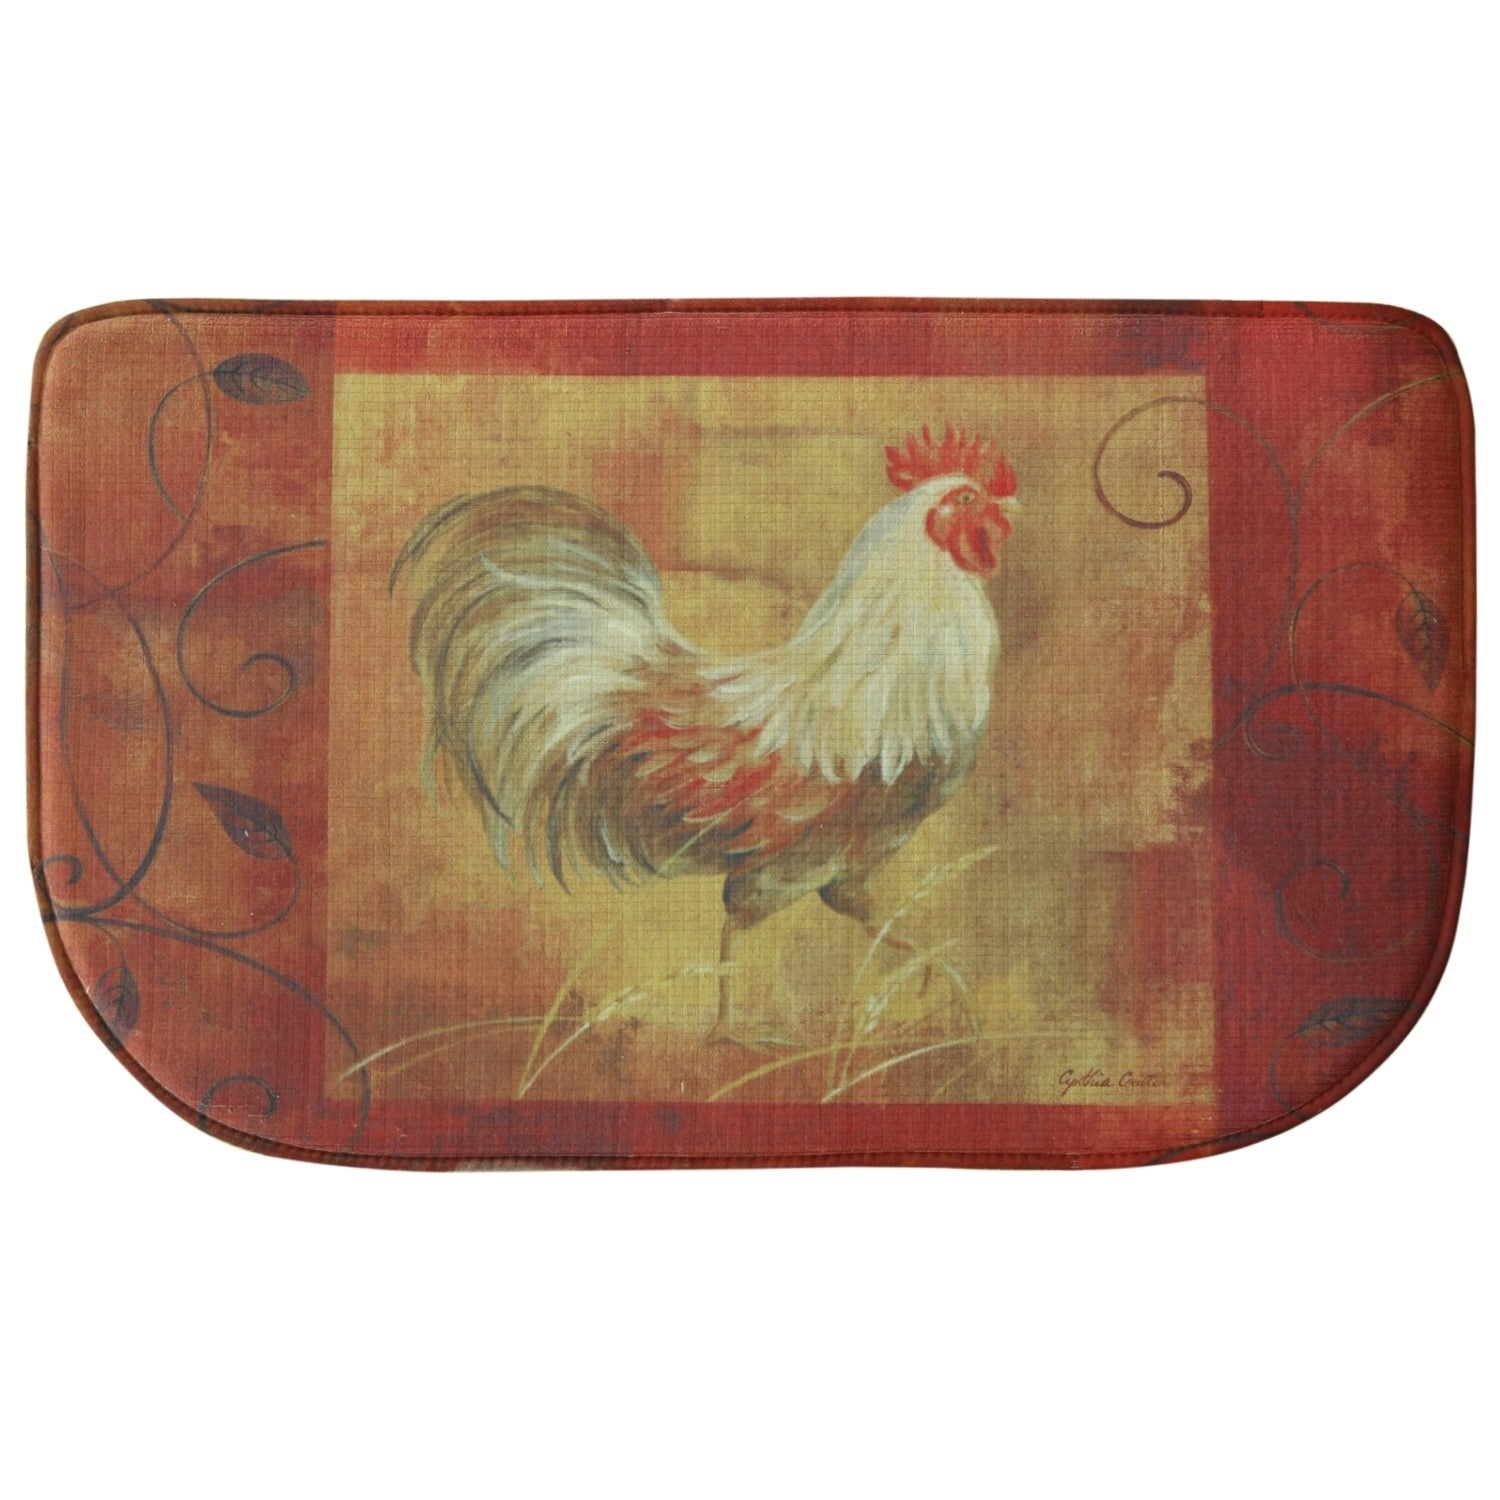 Printed memory foam Rooster & Leaves kitchen rug by Bacov...